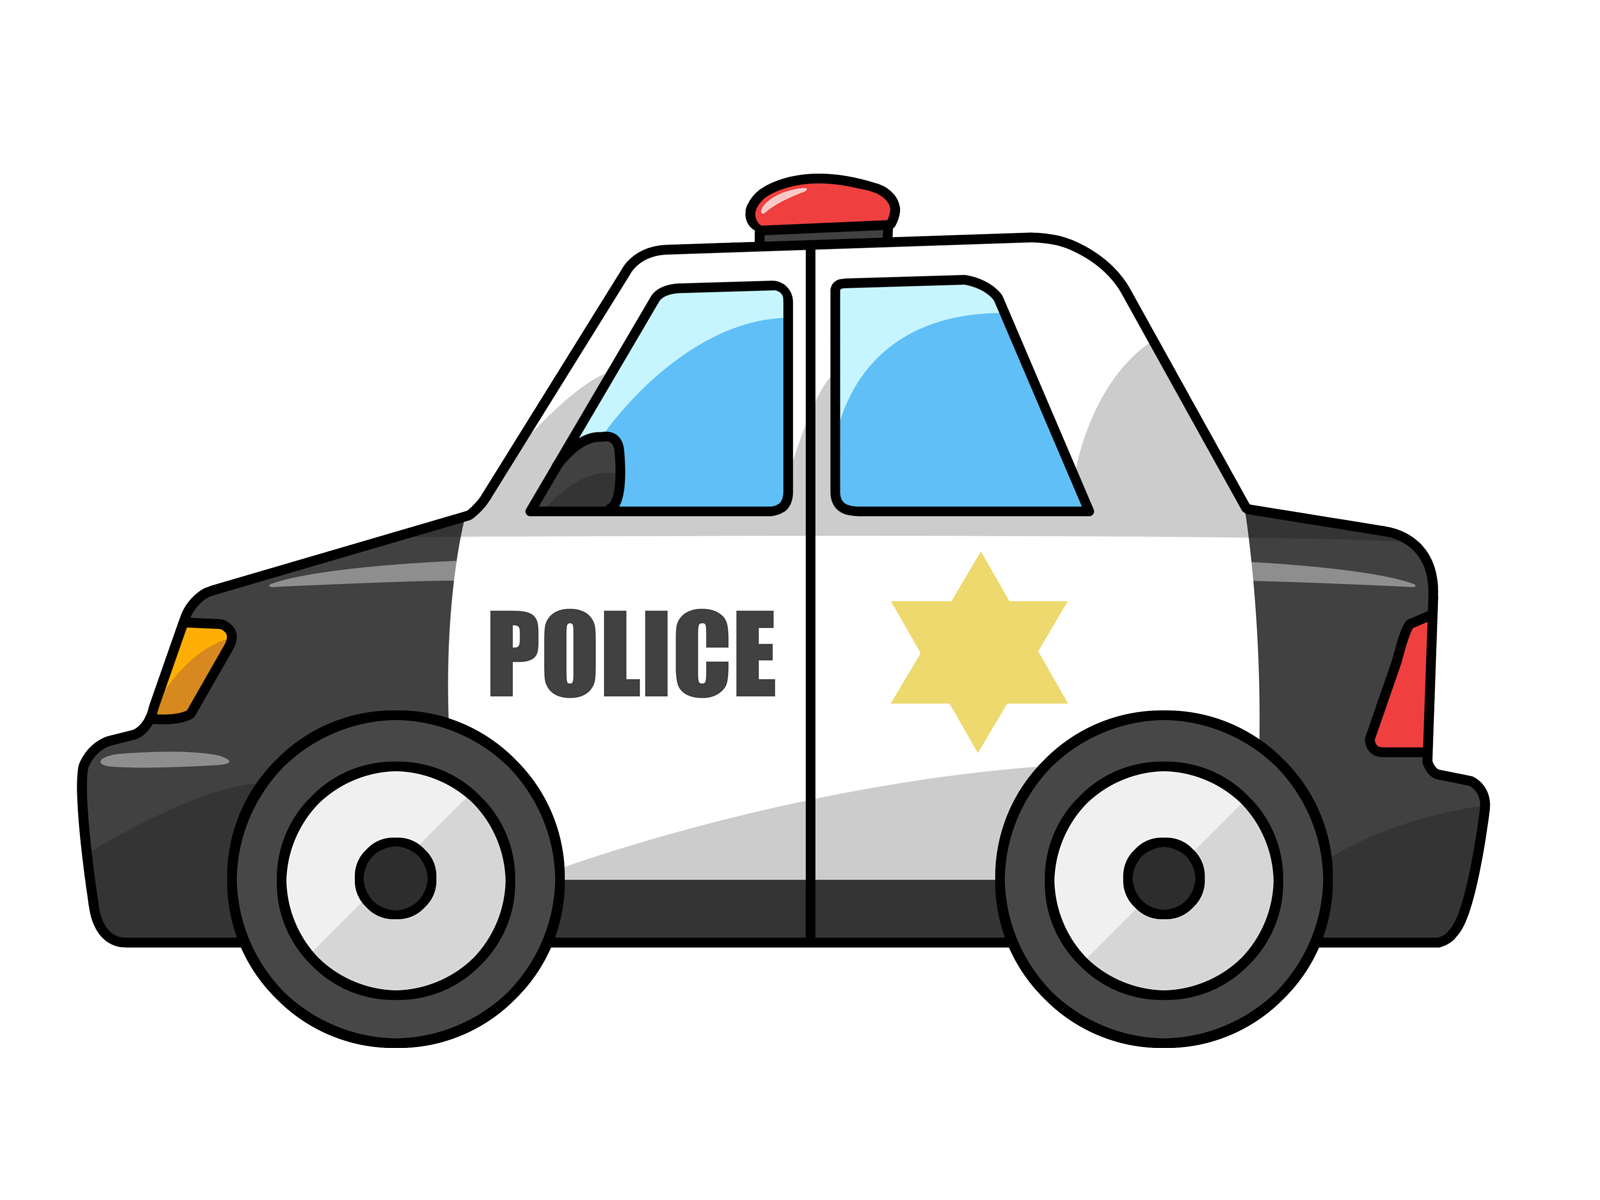 Free to Use u0026amp; Public Domain Police Car Clip Art - ClipArt Best - ClipArt Best   Para hacer!   Pinterest   Creative, Police officer and Clip art